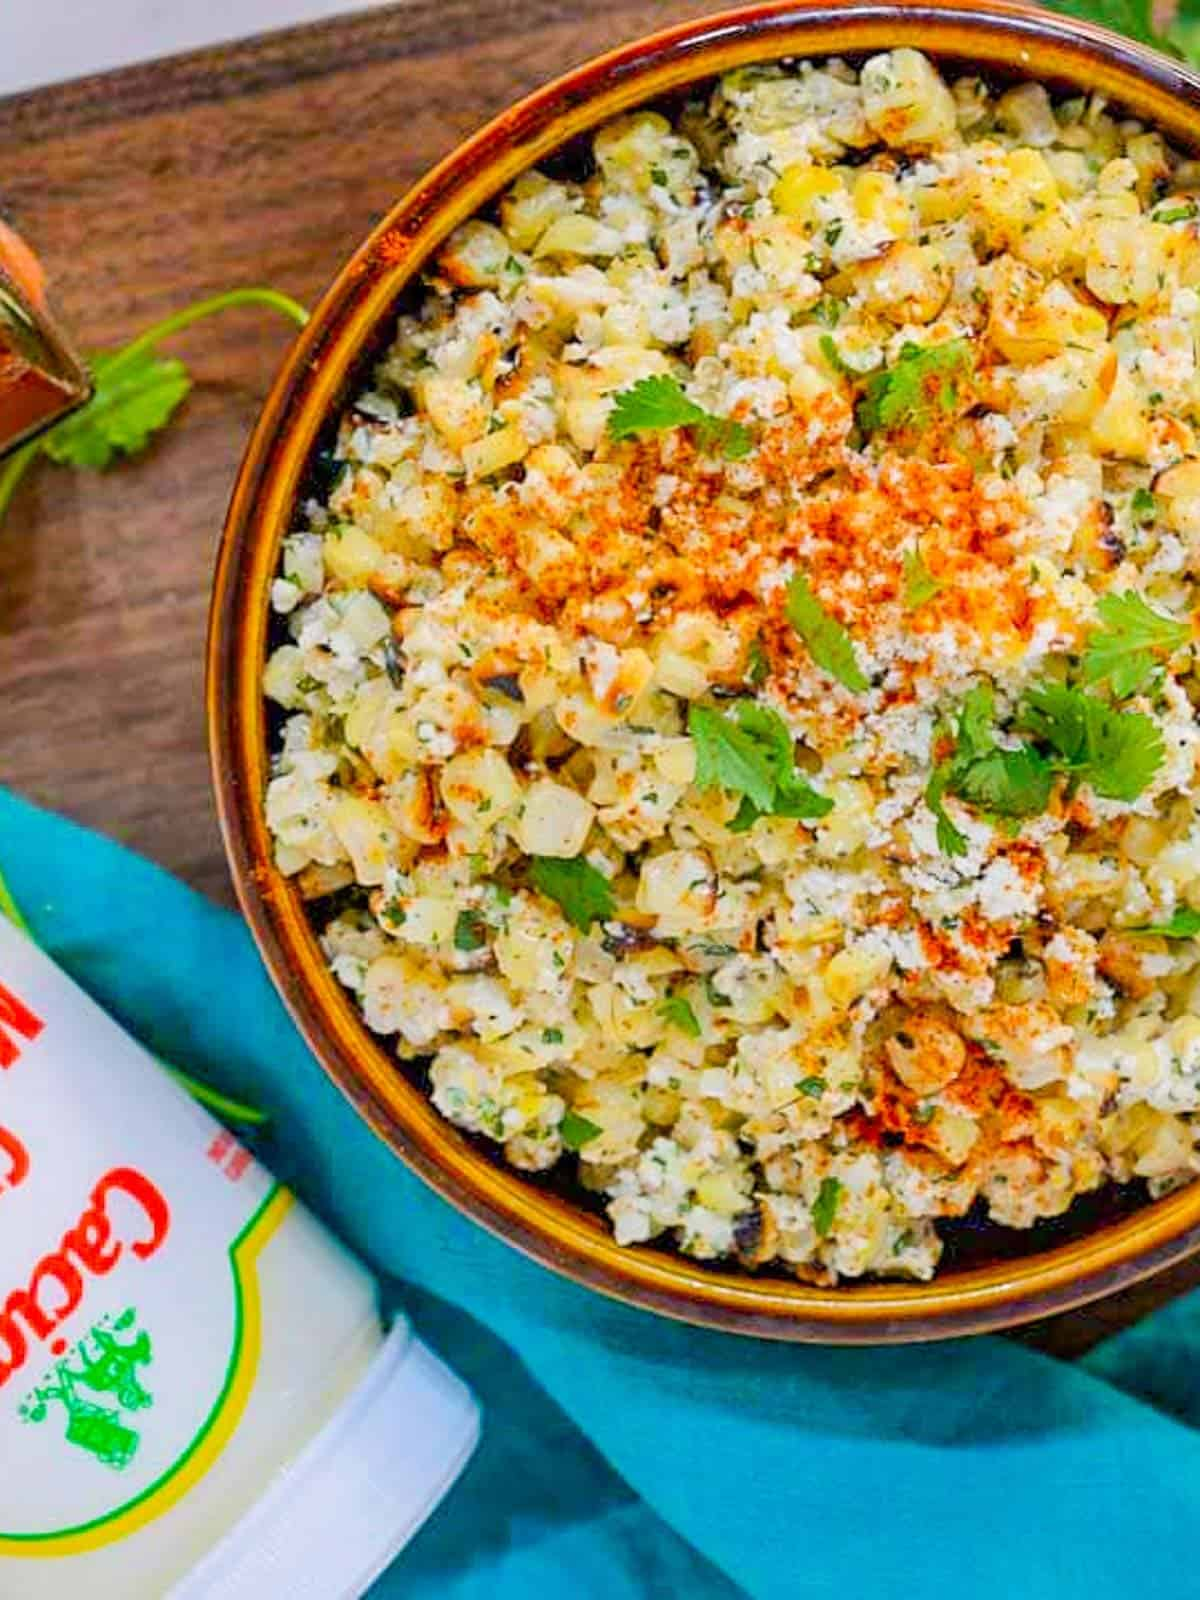 Mexican street corn salad recipe with crema and a spicy creamy sauce